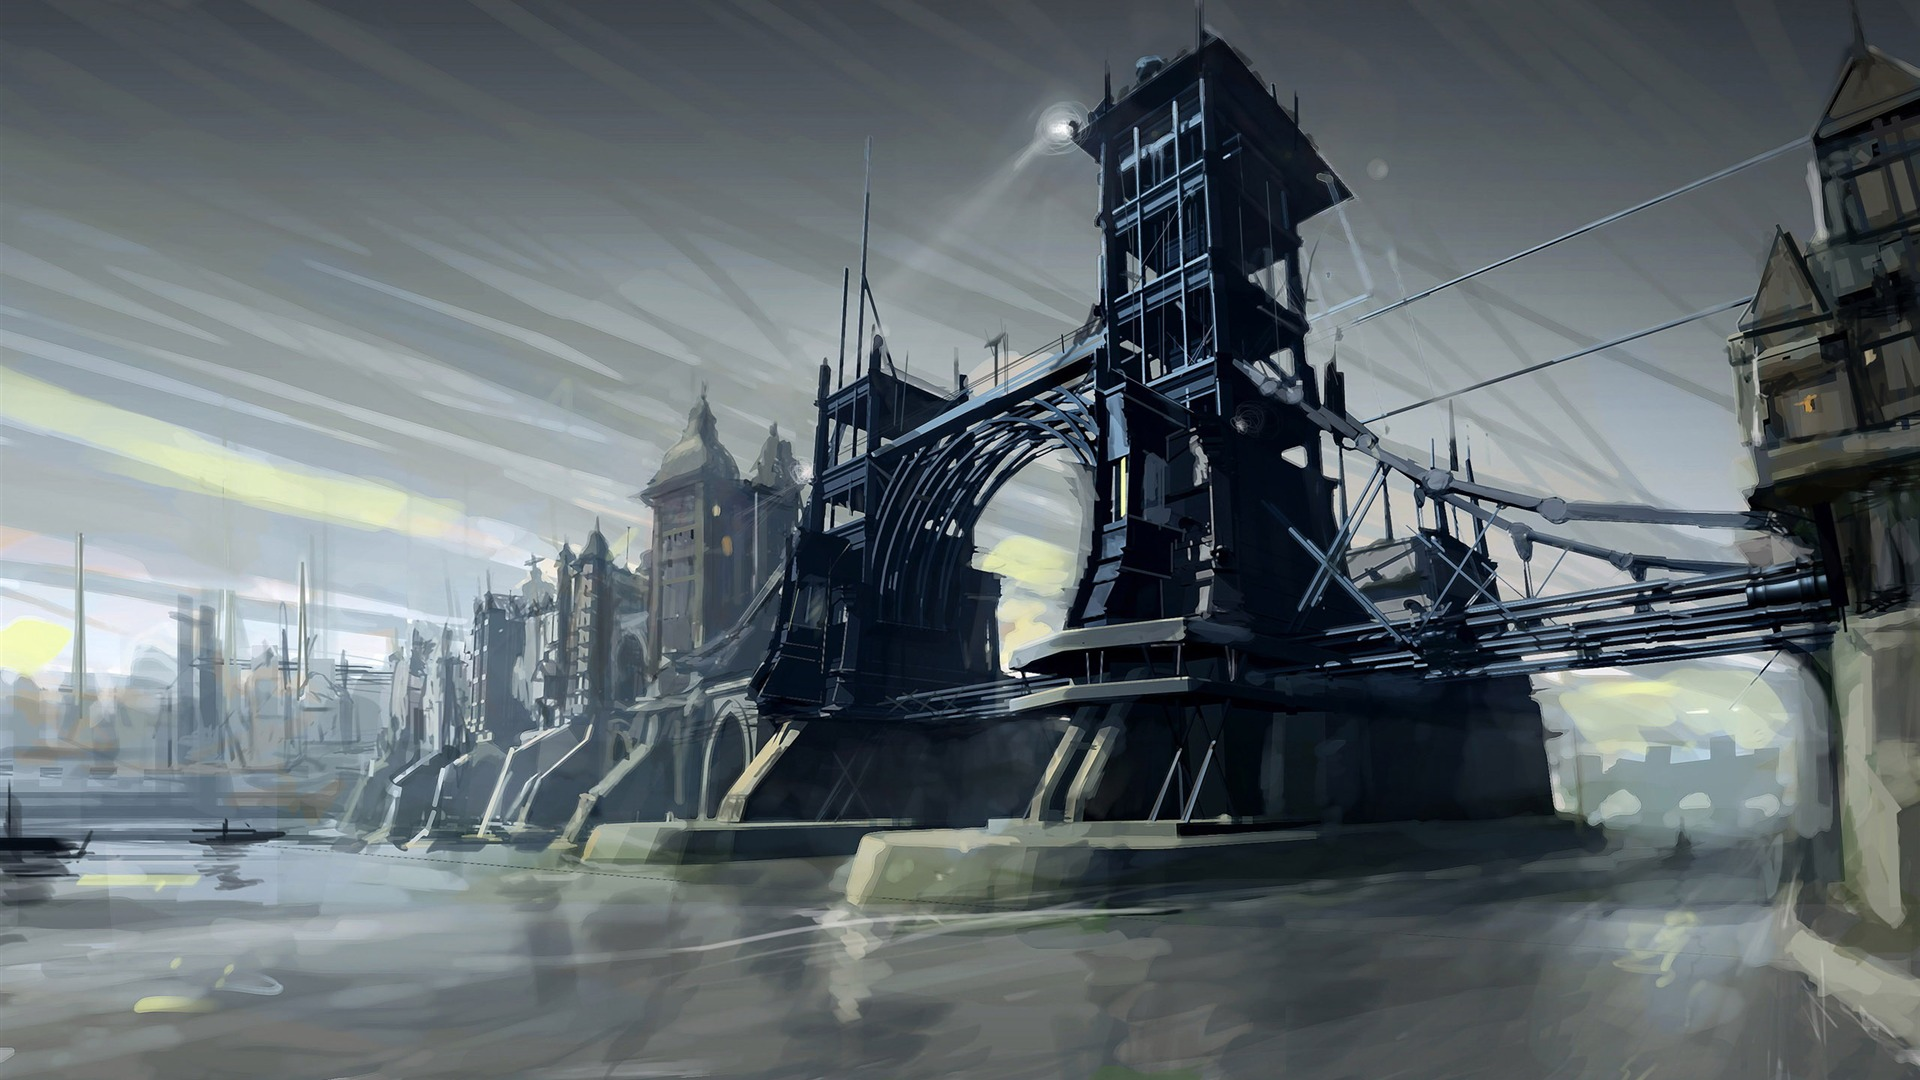 Dishonored Wallpaper In HD #Steampunk #Victorian #Dishonored